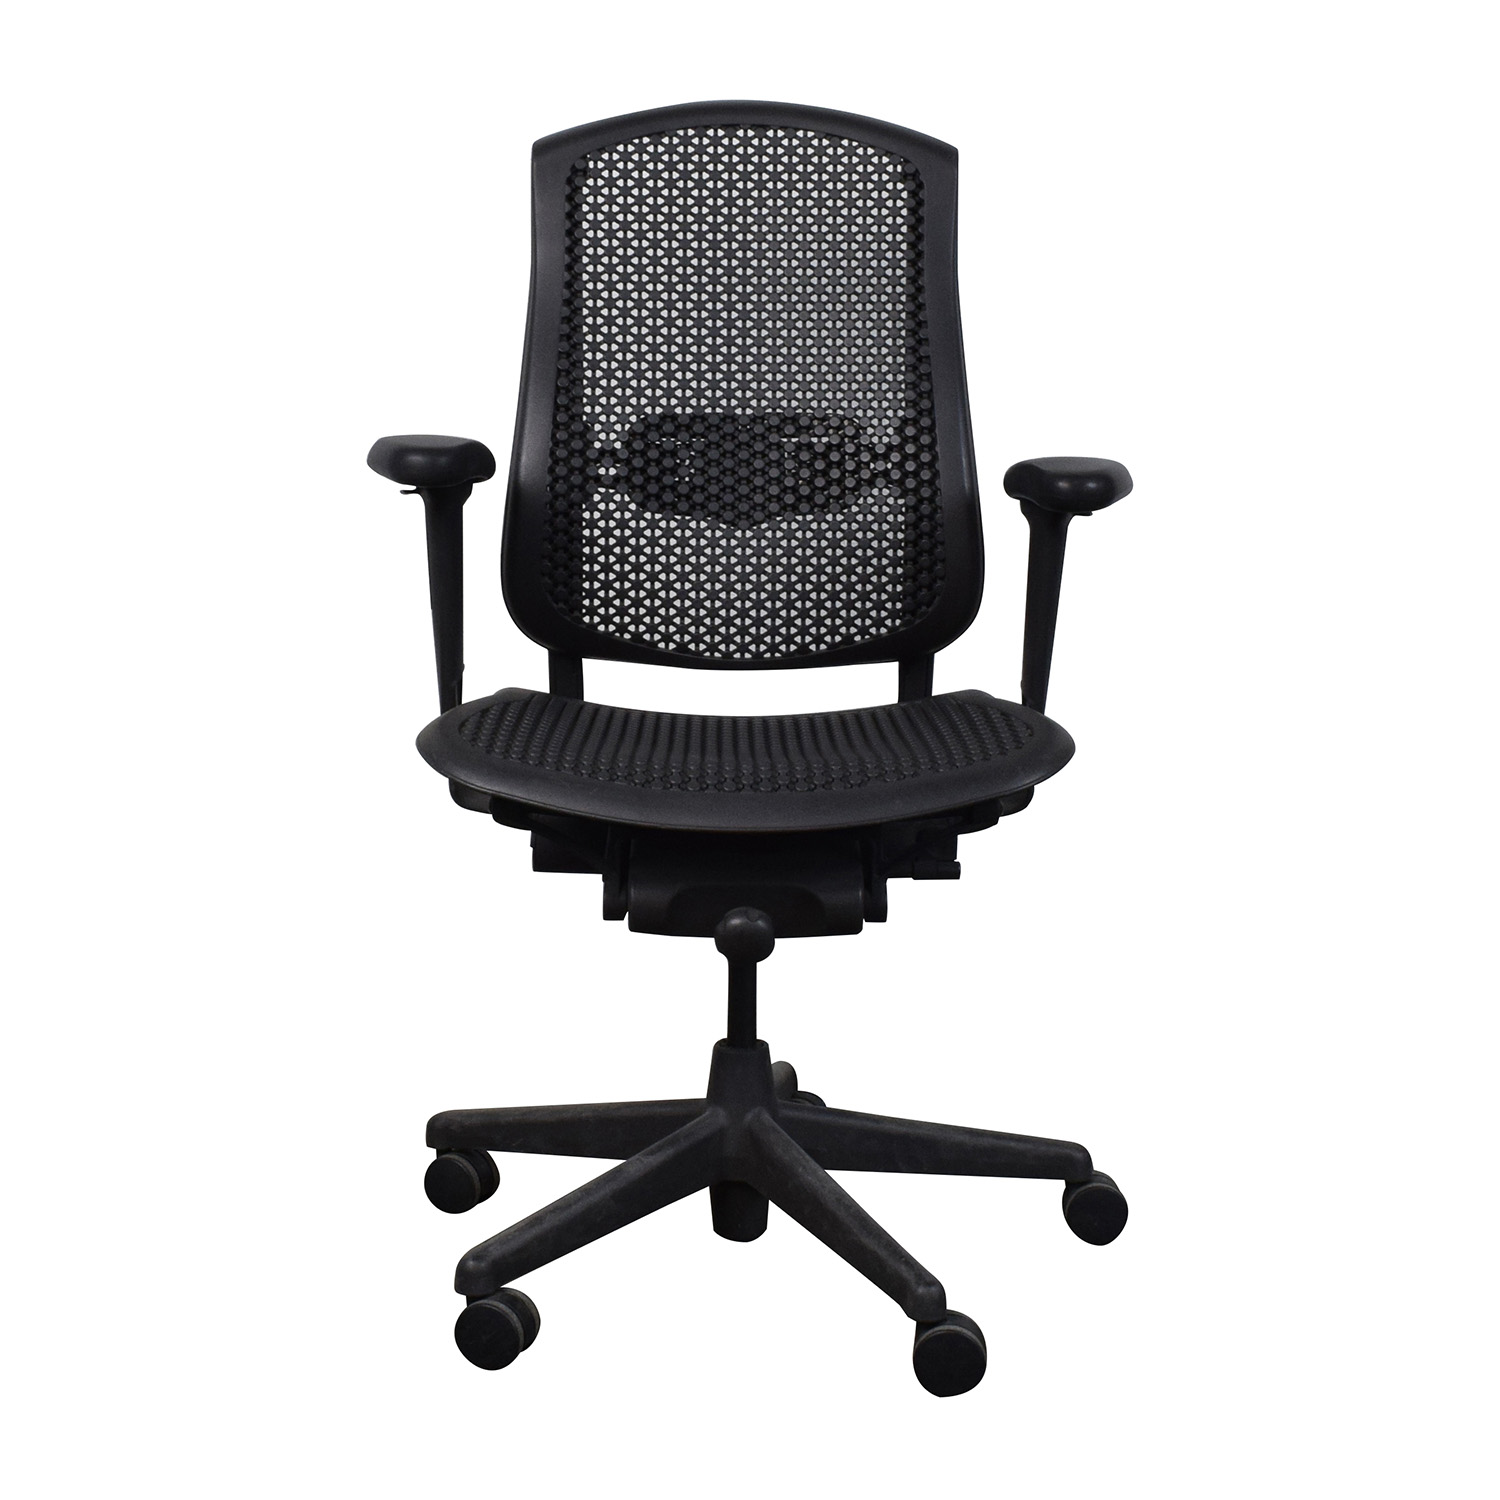 herman miller chair sale stress shop used furniture on celle